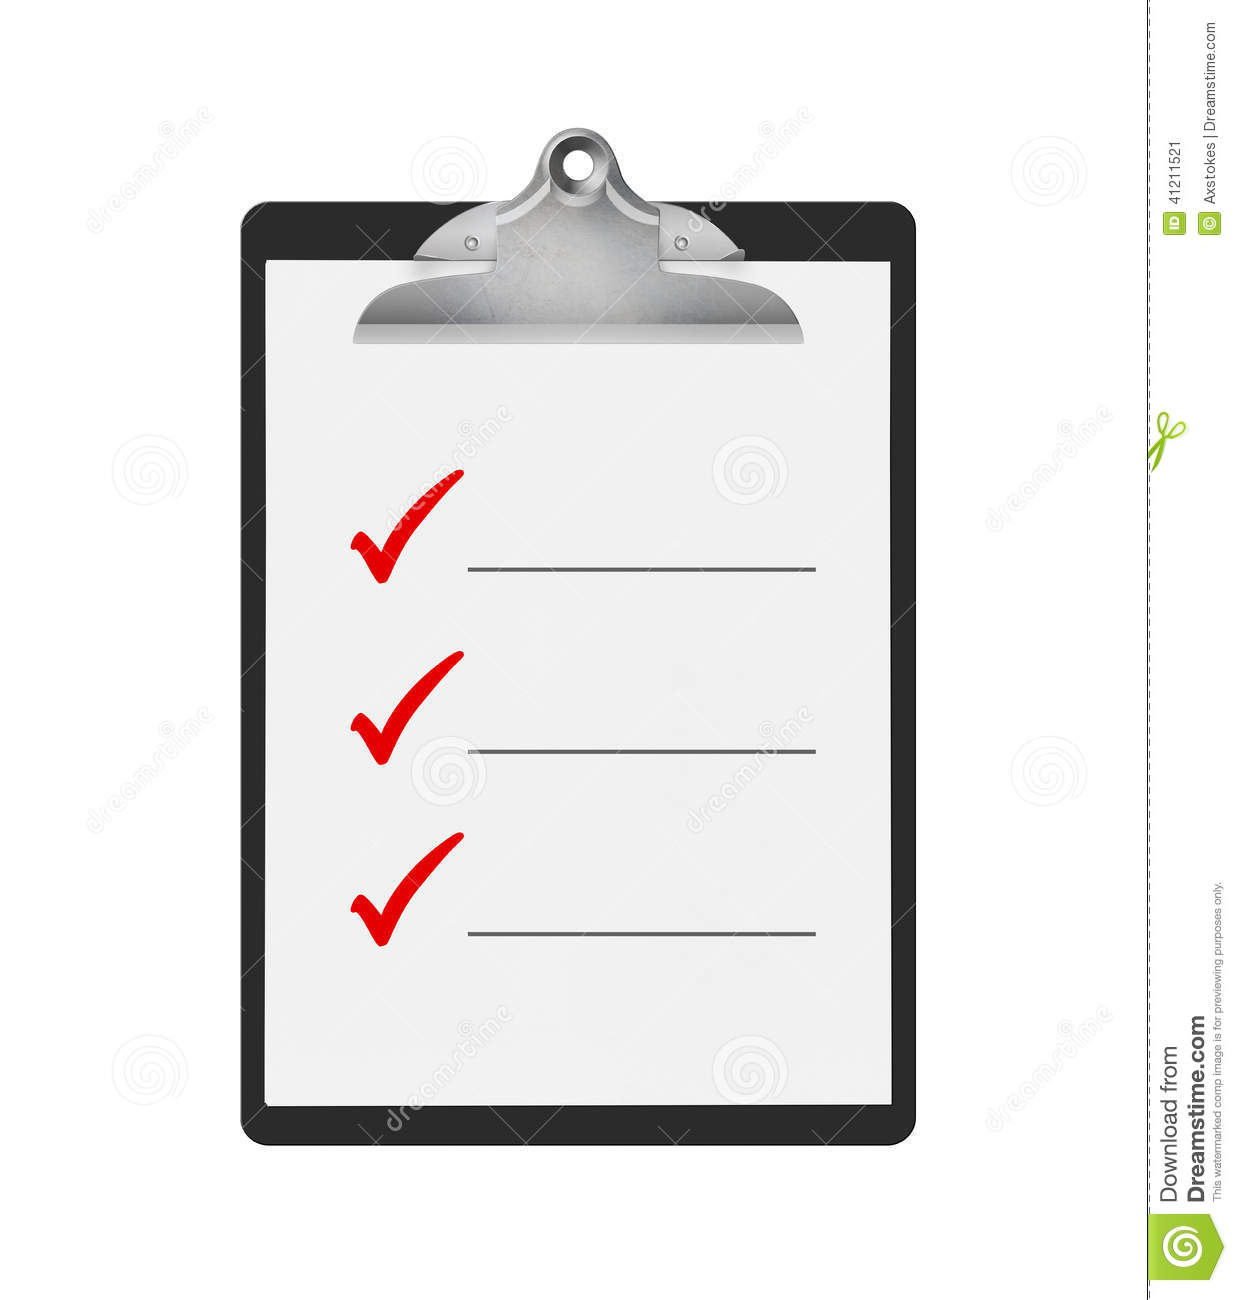 things to do checklist stock illustration  image 41211521